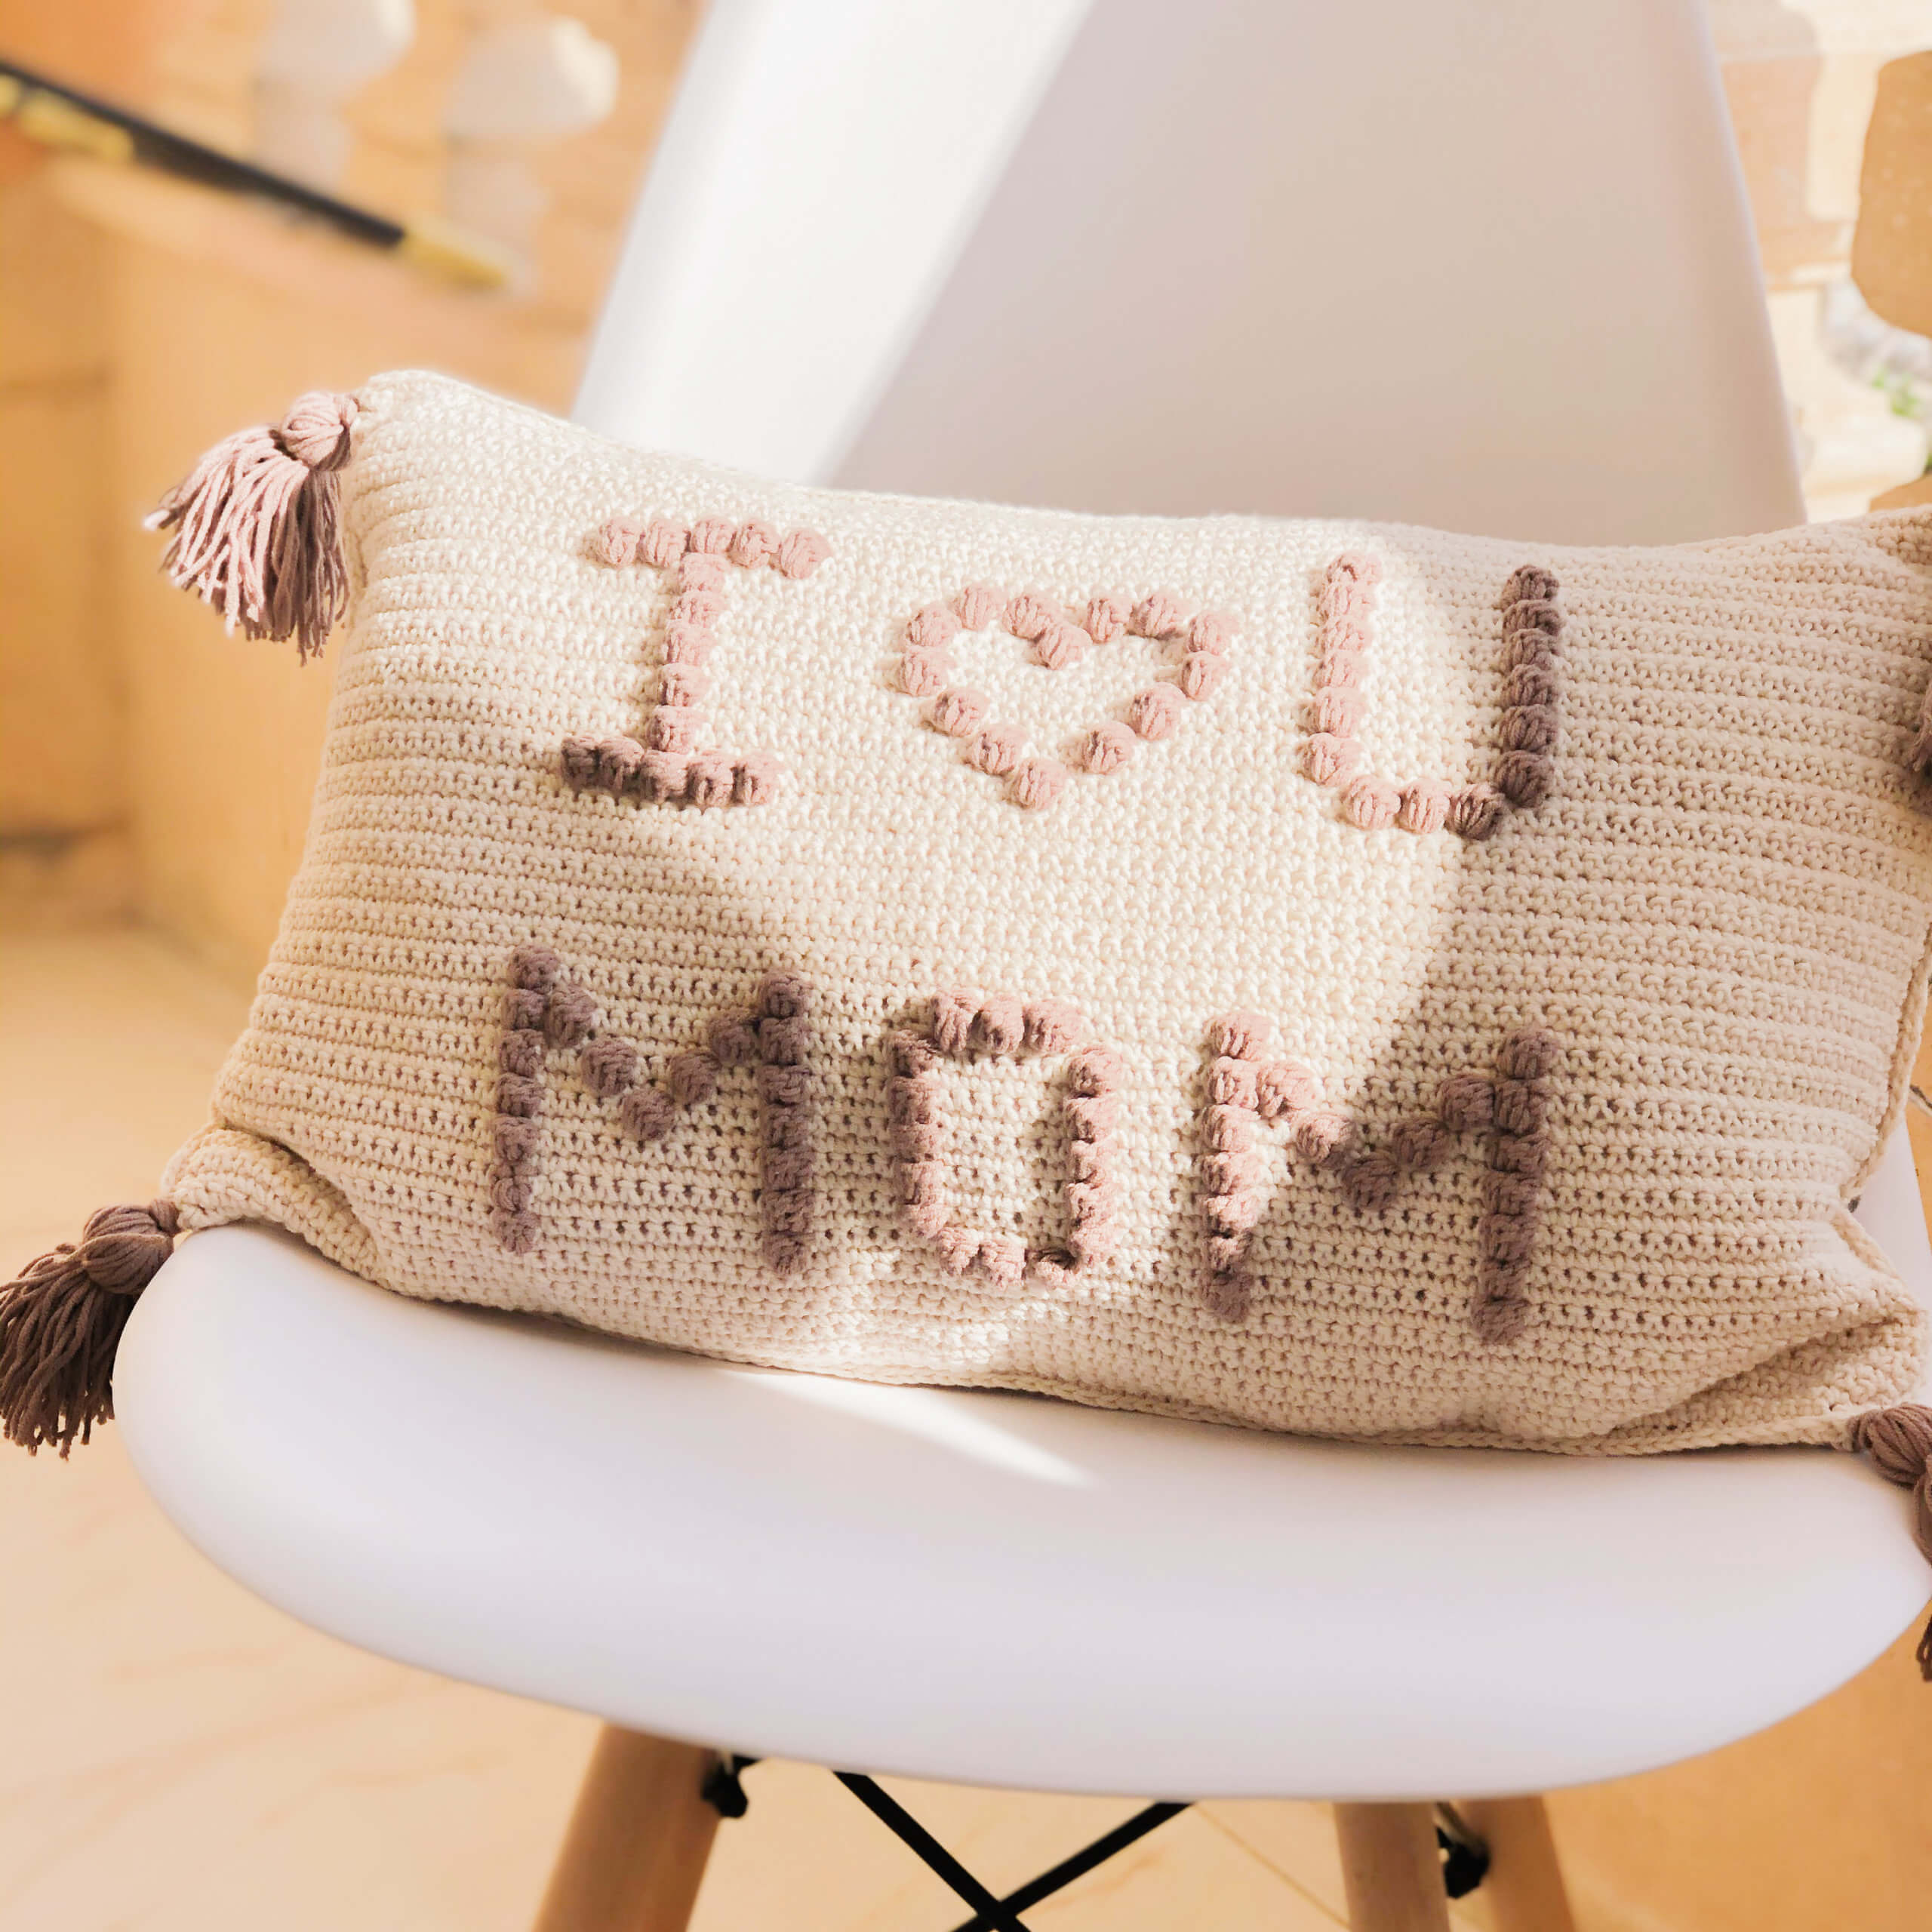 Mother's Day Crochet Gift- Free Cushion Cover Pattern!